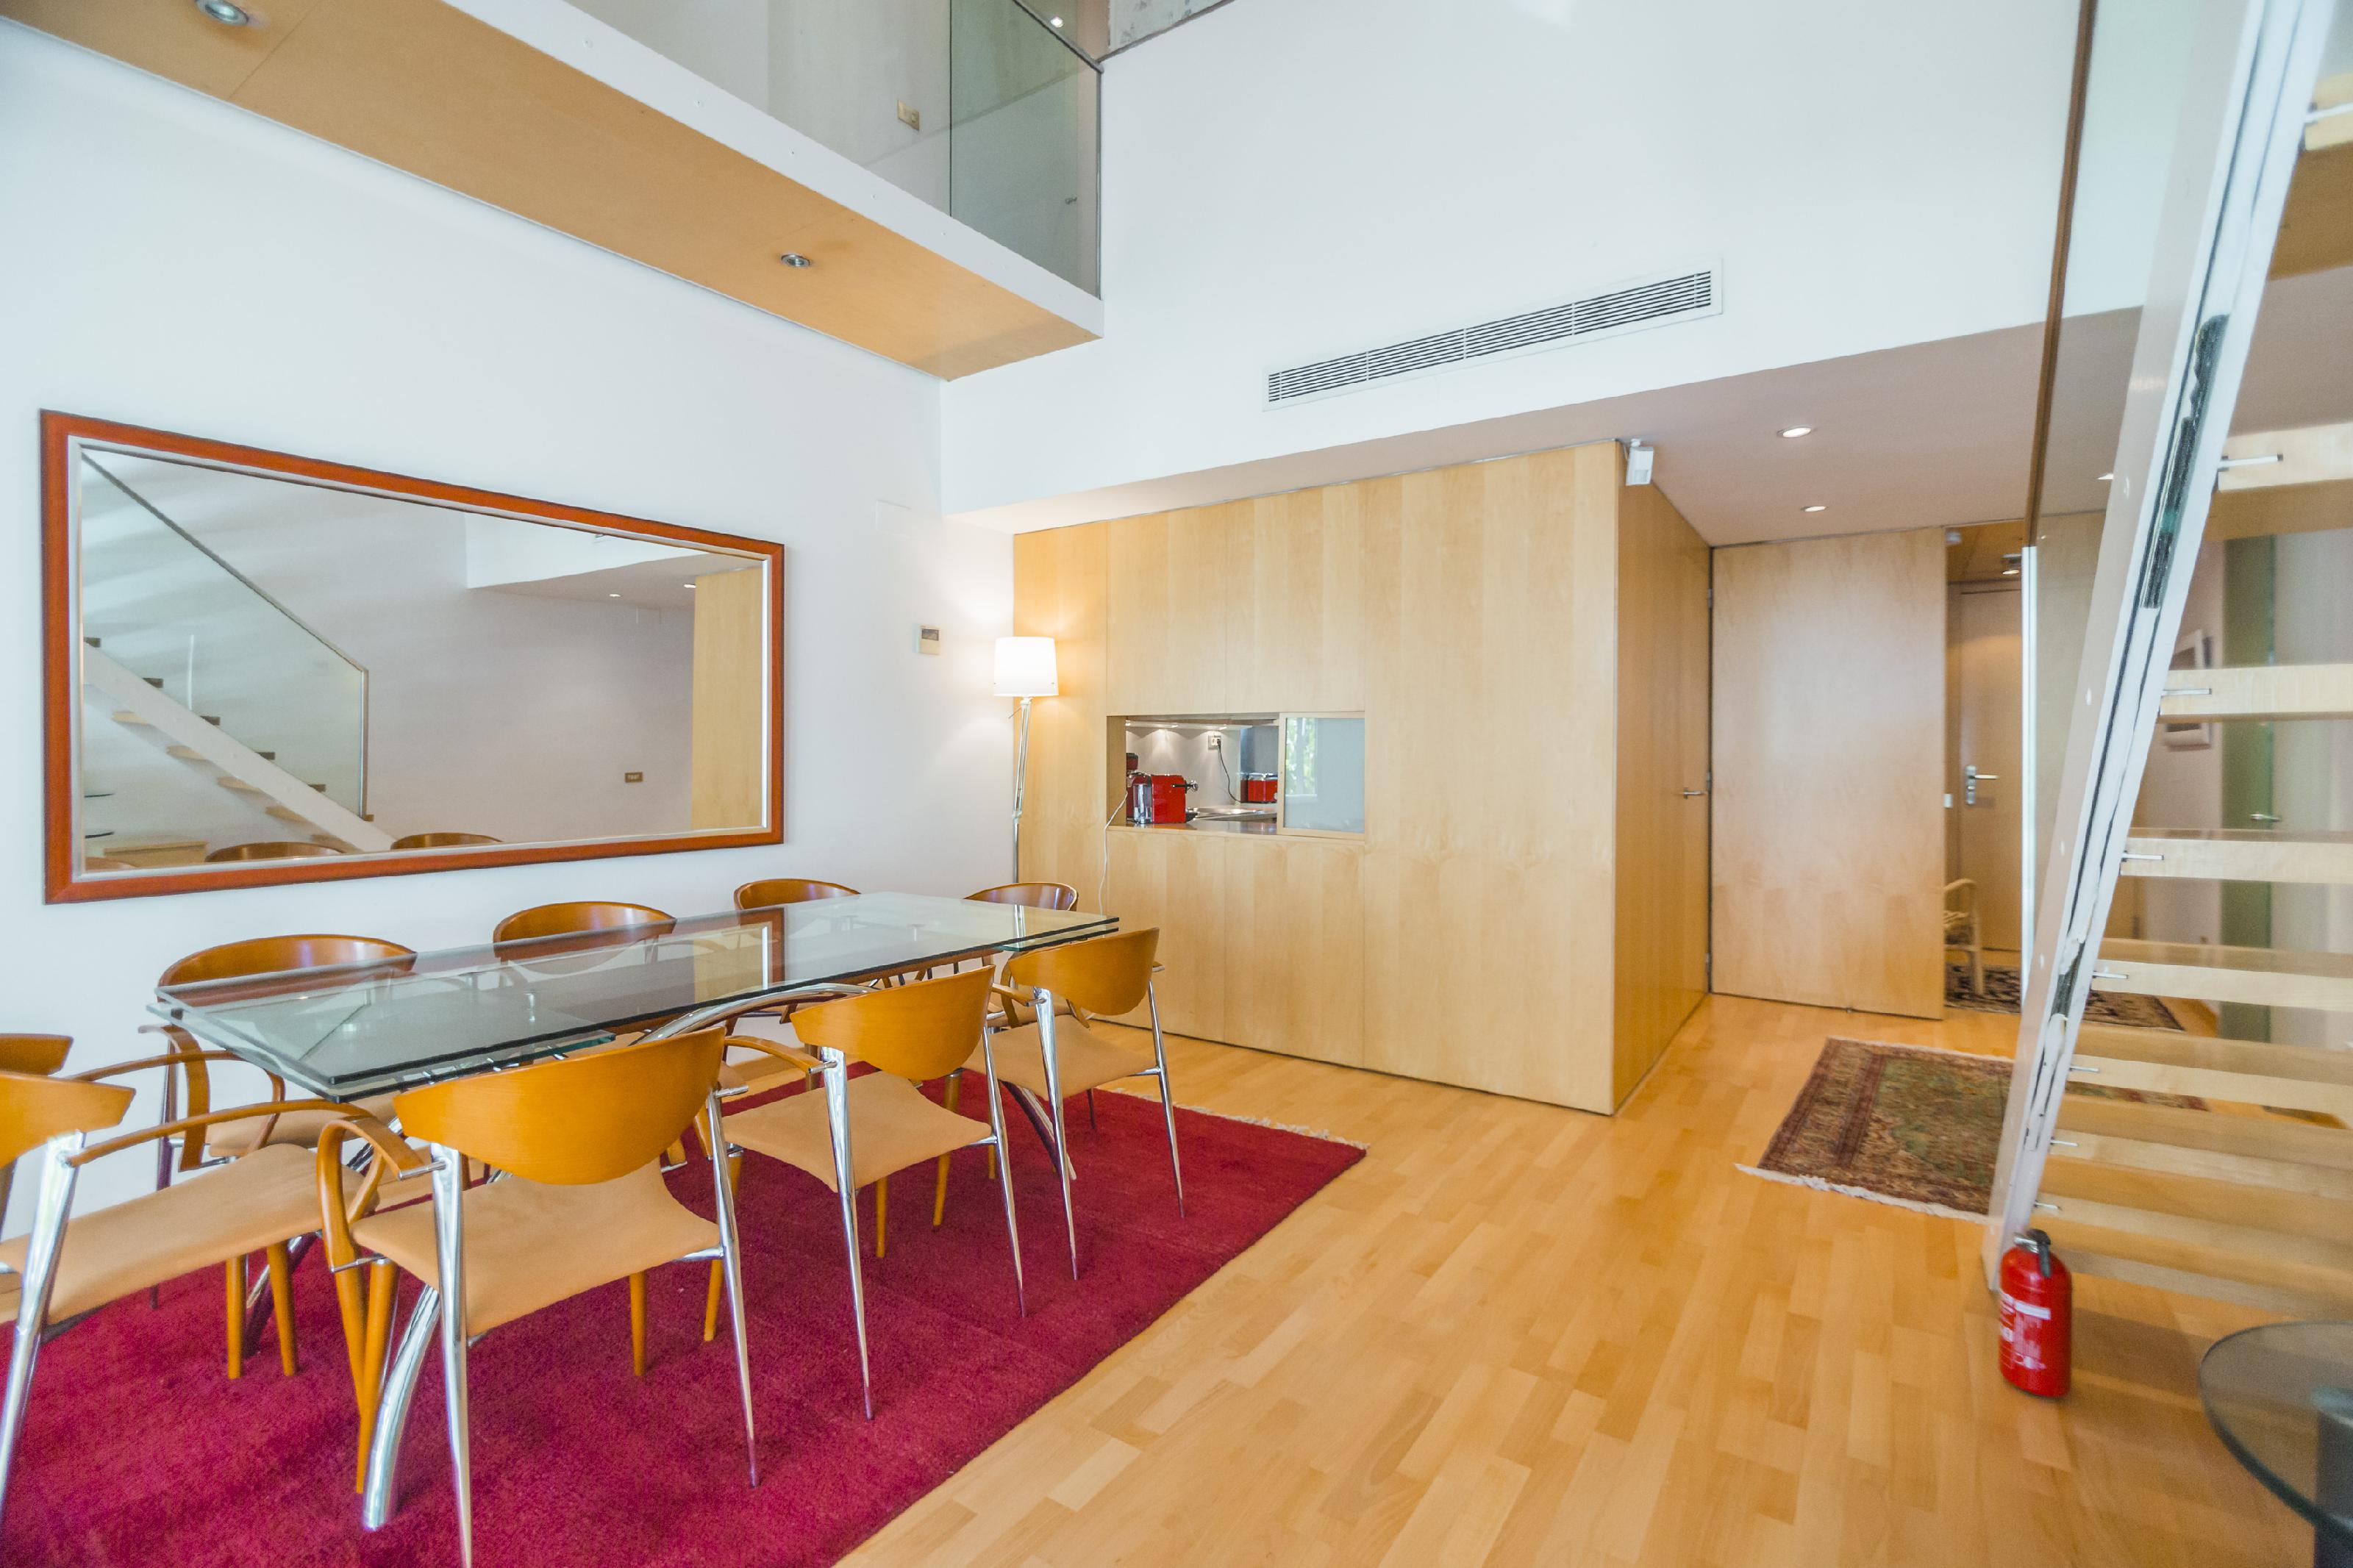 109651 Apartment for sale in Eixample, Dreta Eixample 26